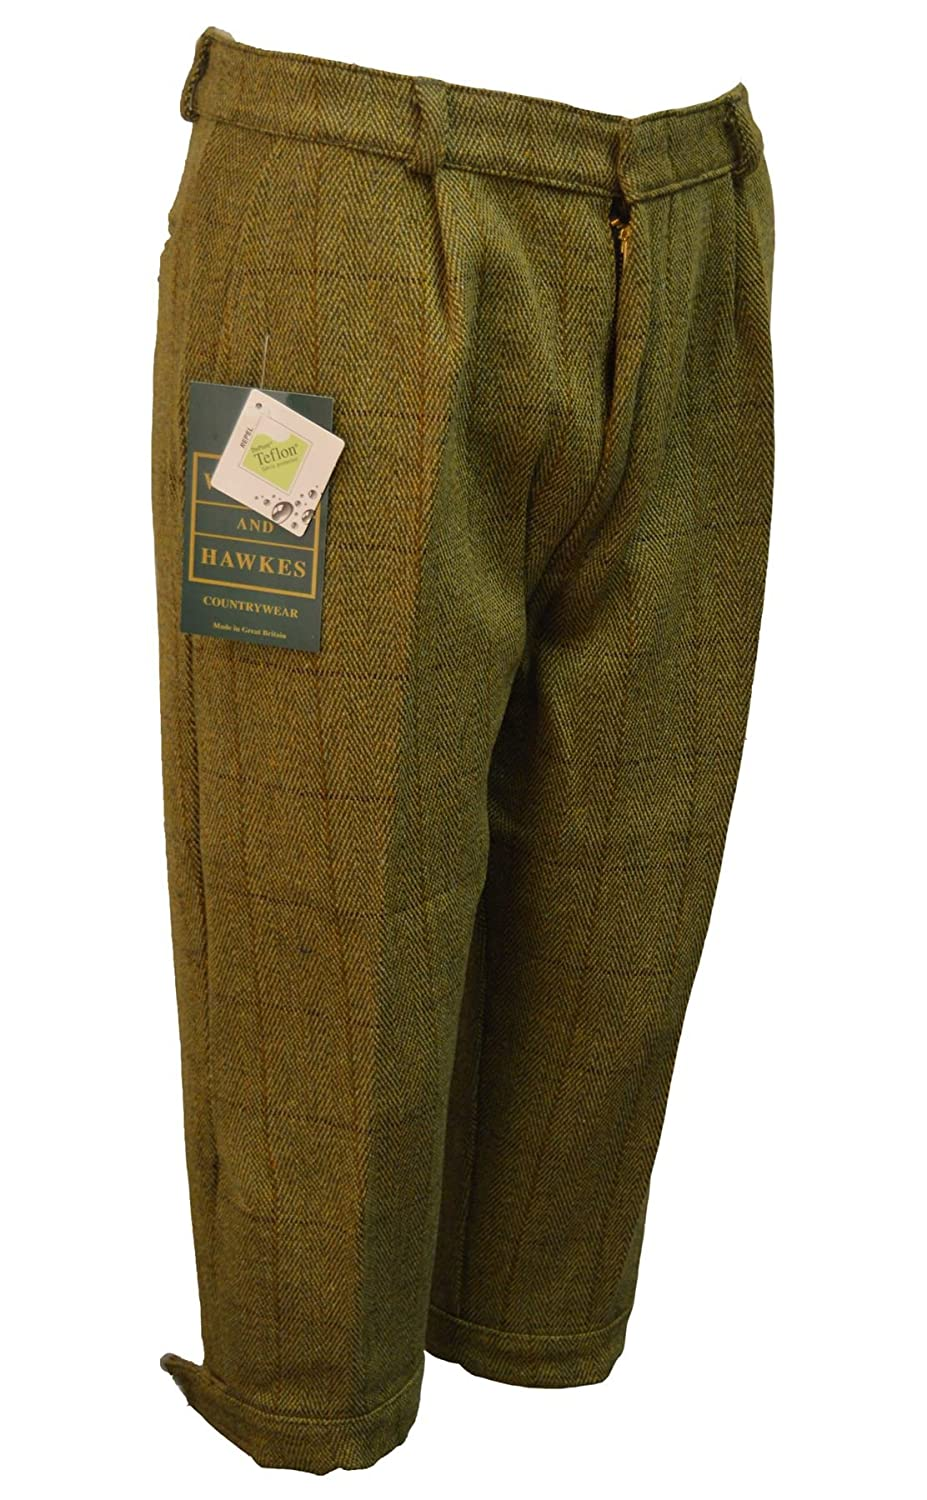 1920s Men's Pants, Trousers, Plus Fours, Knickers Walker & Hawkes - Mens Derby Tweed Shooting Plus Fours LONG Breeks Trousers - Light Sage - 32-42 $76.99 AT vintagedancer.com